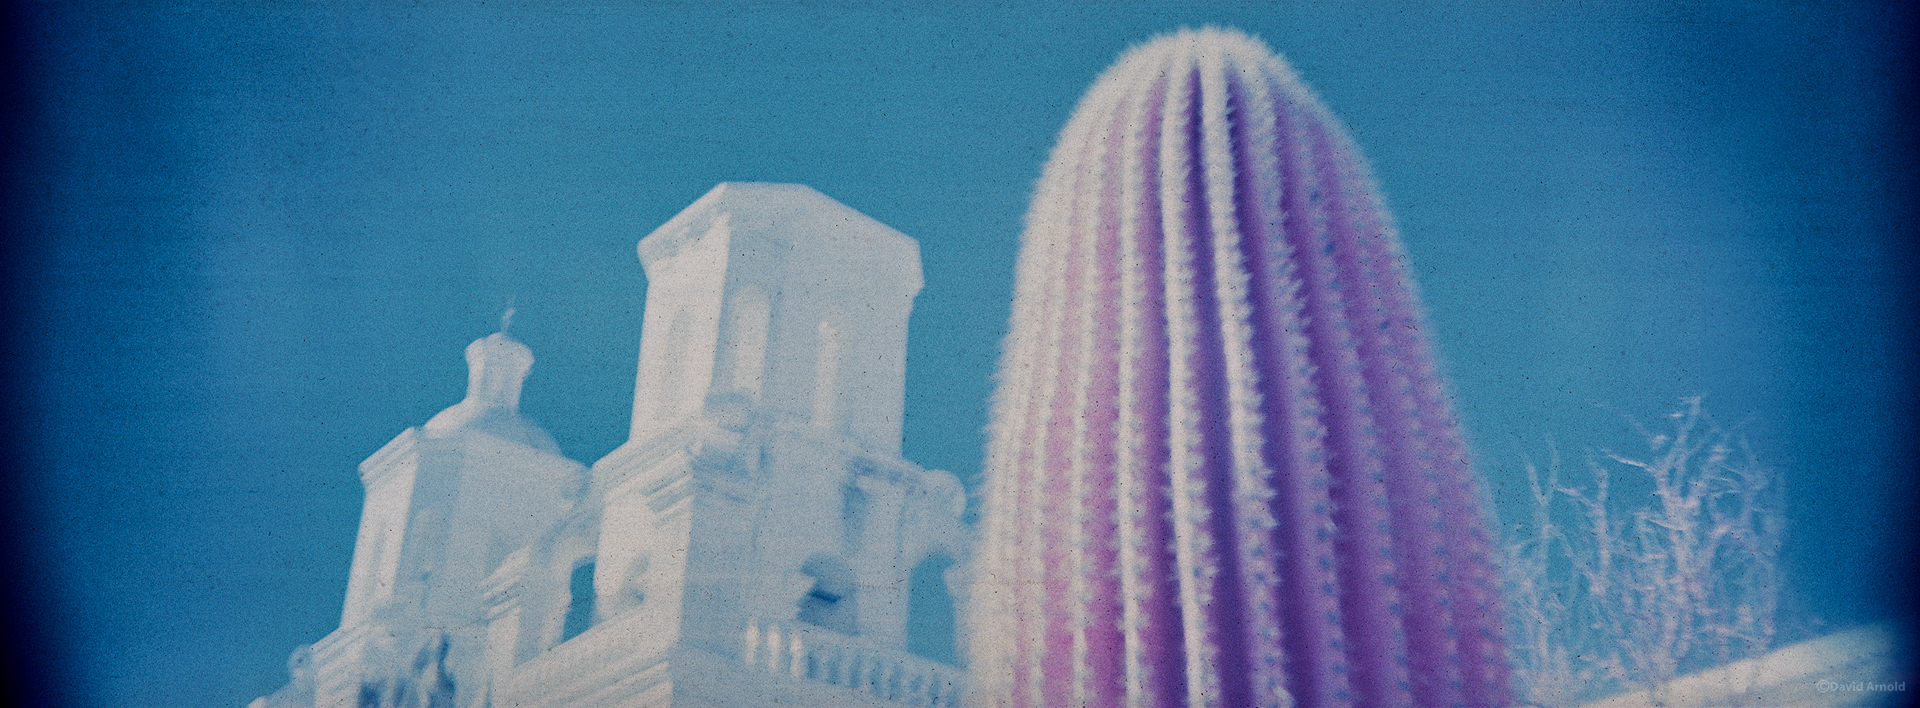 Two Towers and Saguaro Cactus, Mission San Xavier del Bac.